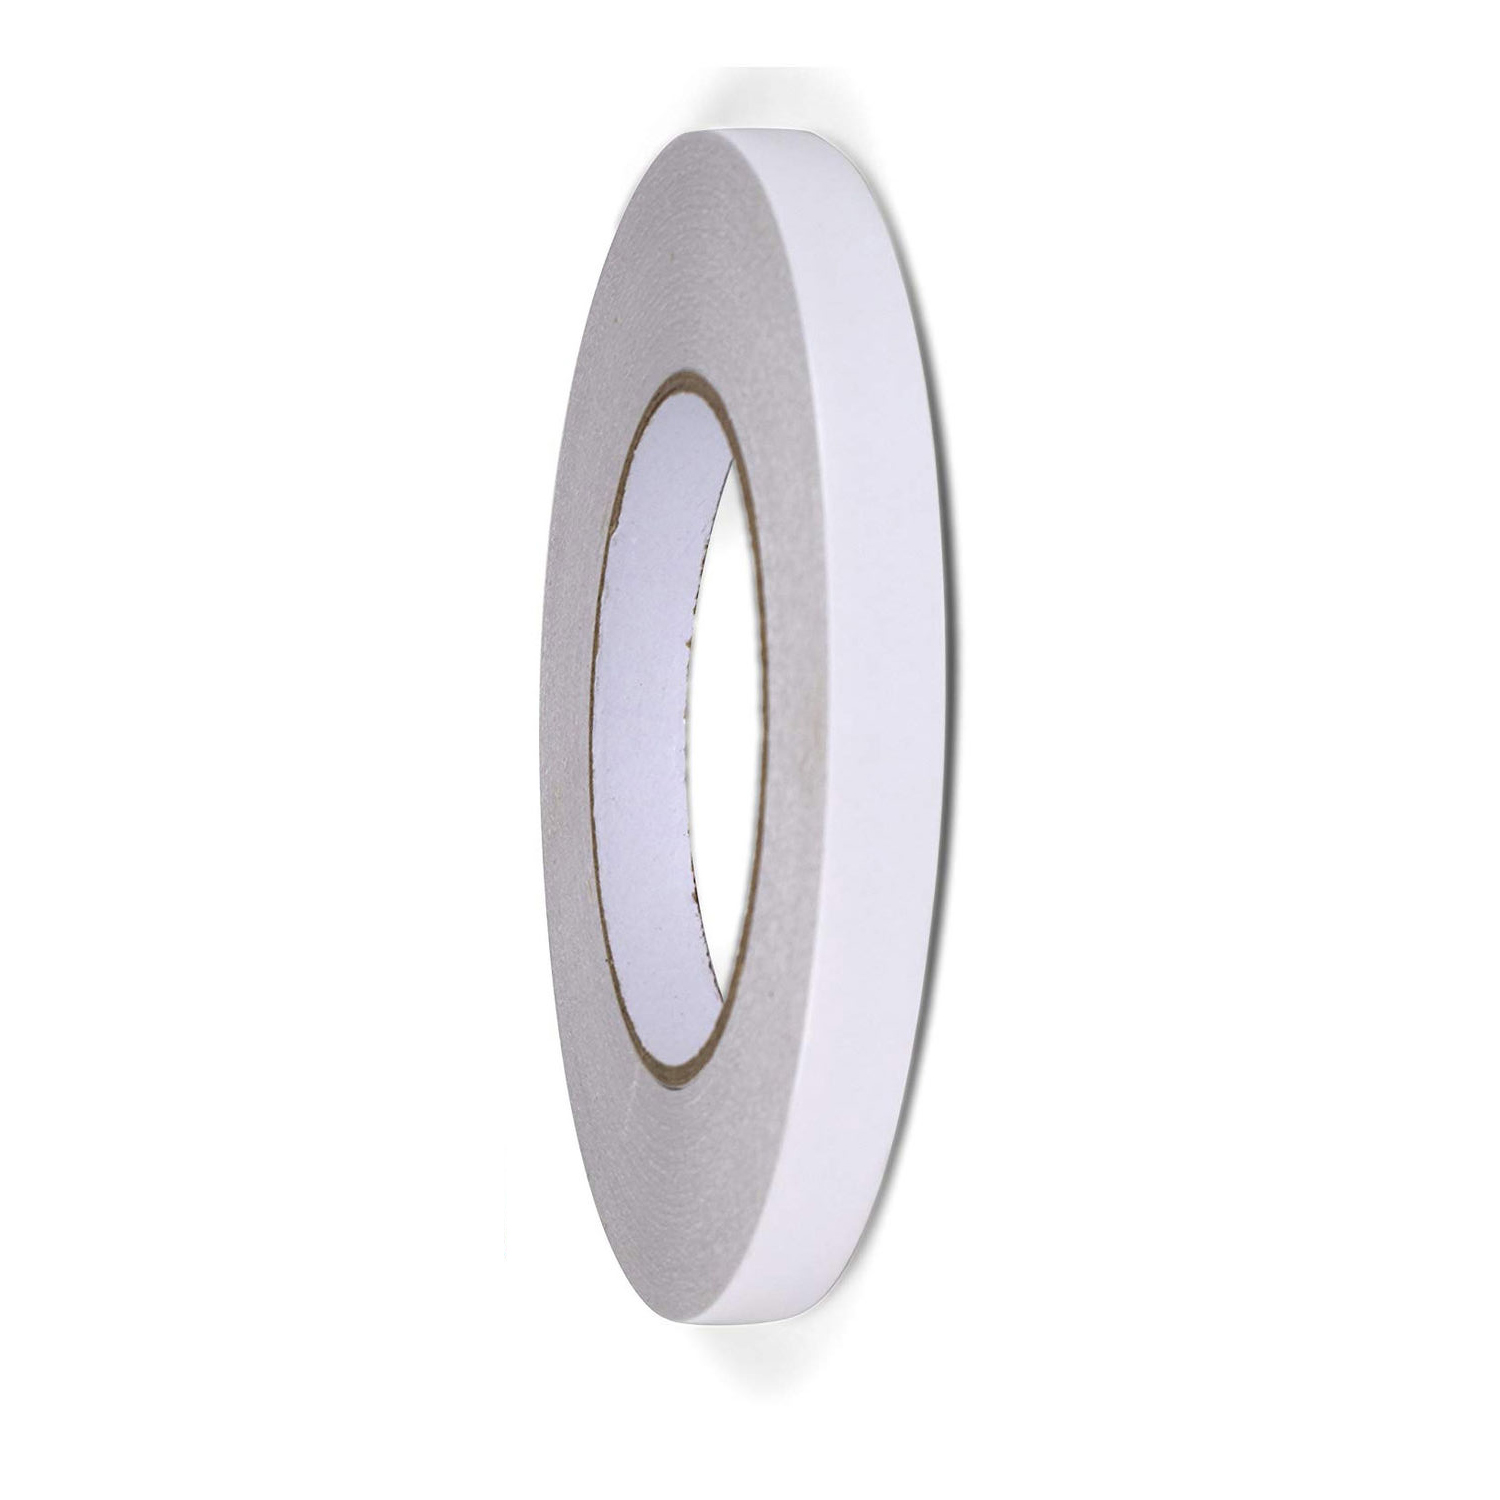 V Fix Double-Sided Tape 0.5in x 15yds - VFTA1/2X15DS (pc)